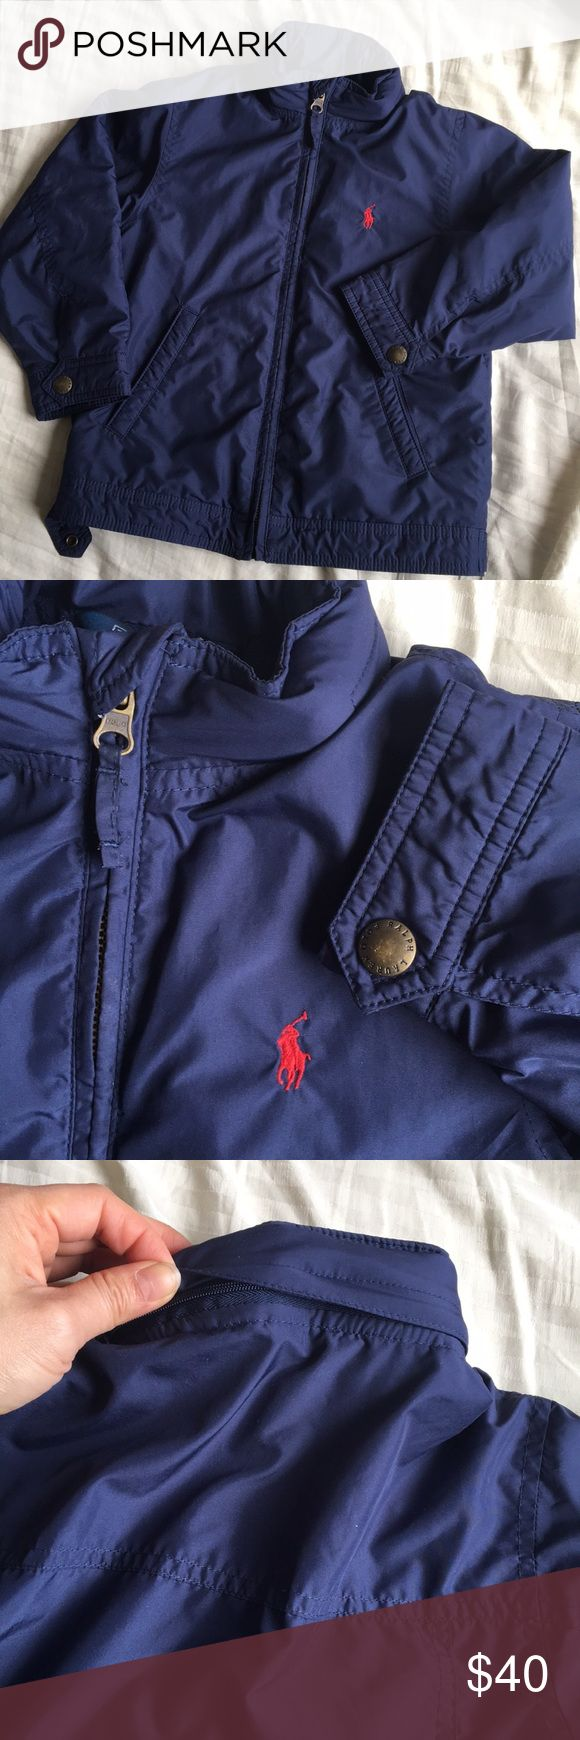 Toddler Boys Ralph Lauren Polo Jacket Gently worn in very good used condition. Boys size 4T. Lined with fleece and warm. Hidden hoodie in jacket collar. Pet and smoke free home! Ralph Lauren Jackets & Coats